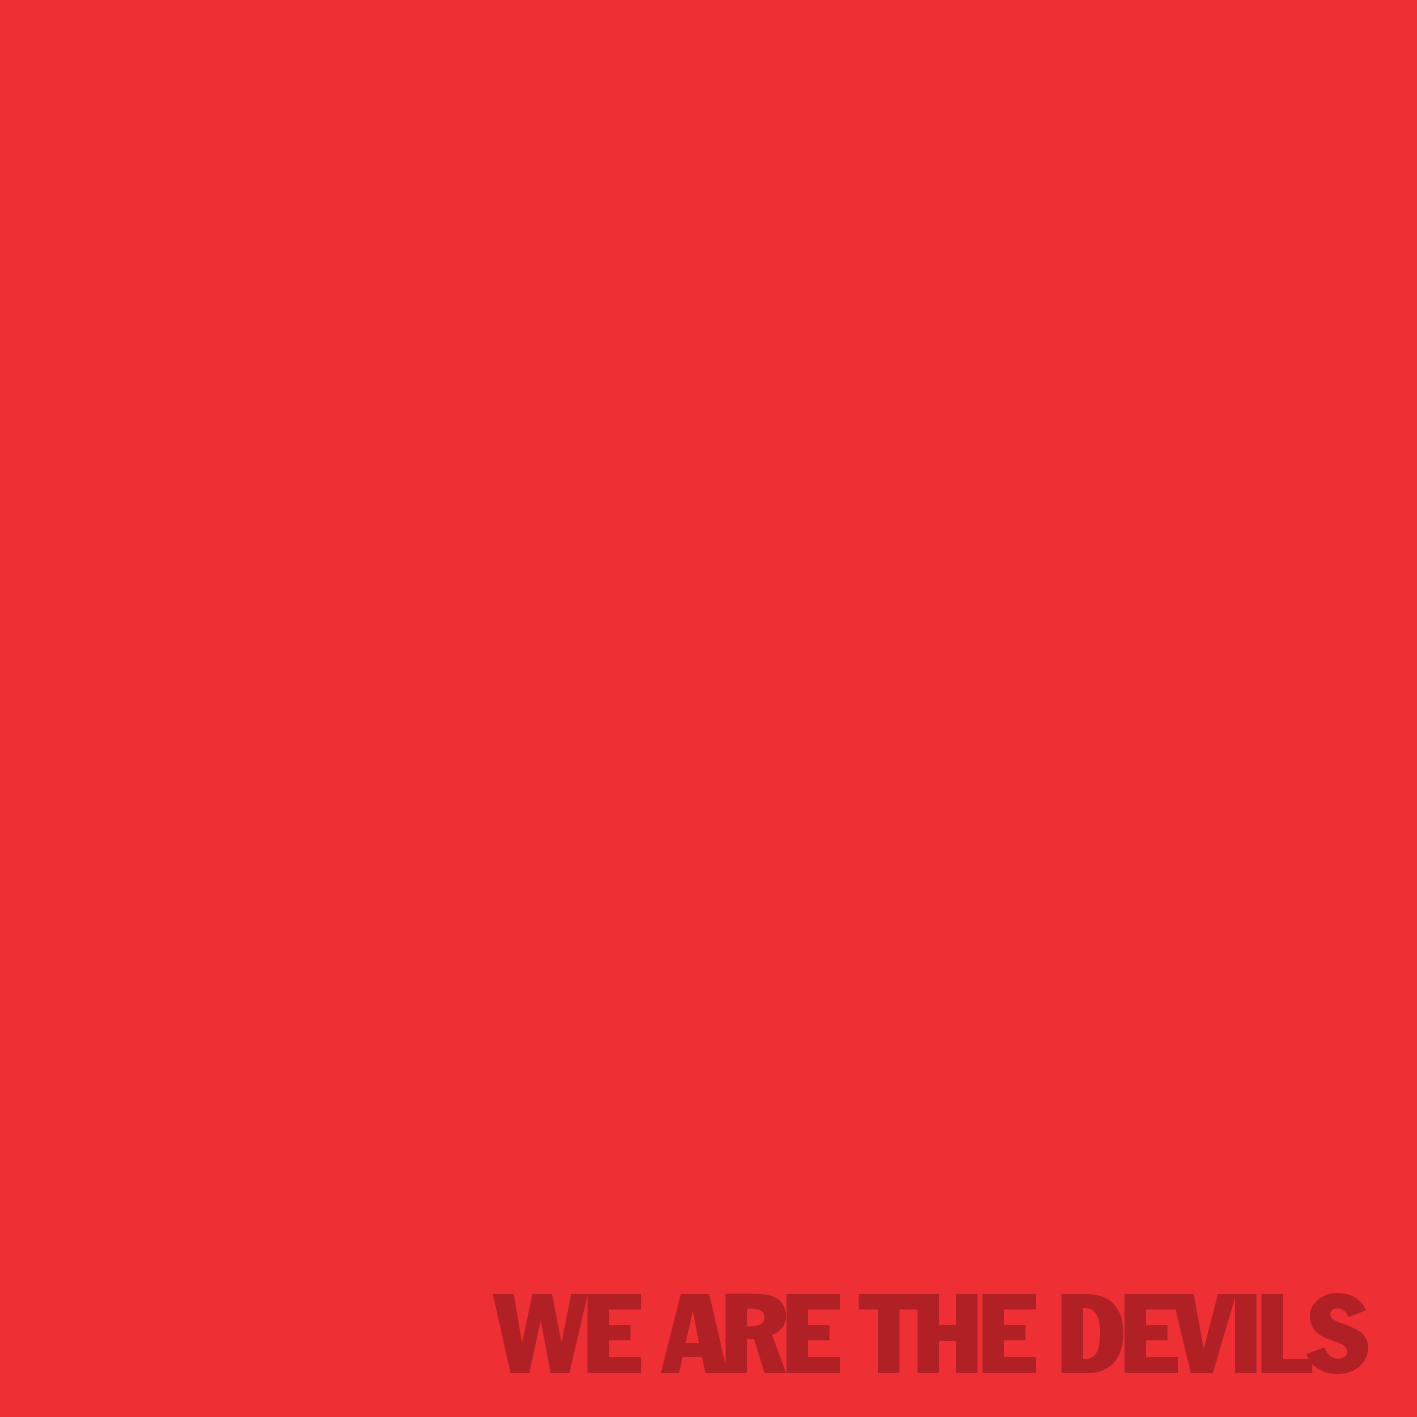 The Devils - We Are the Devils